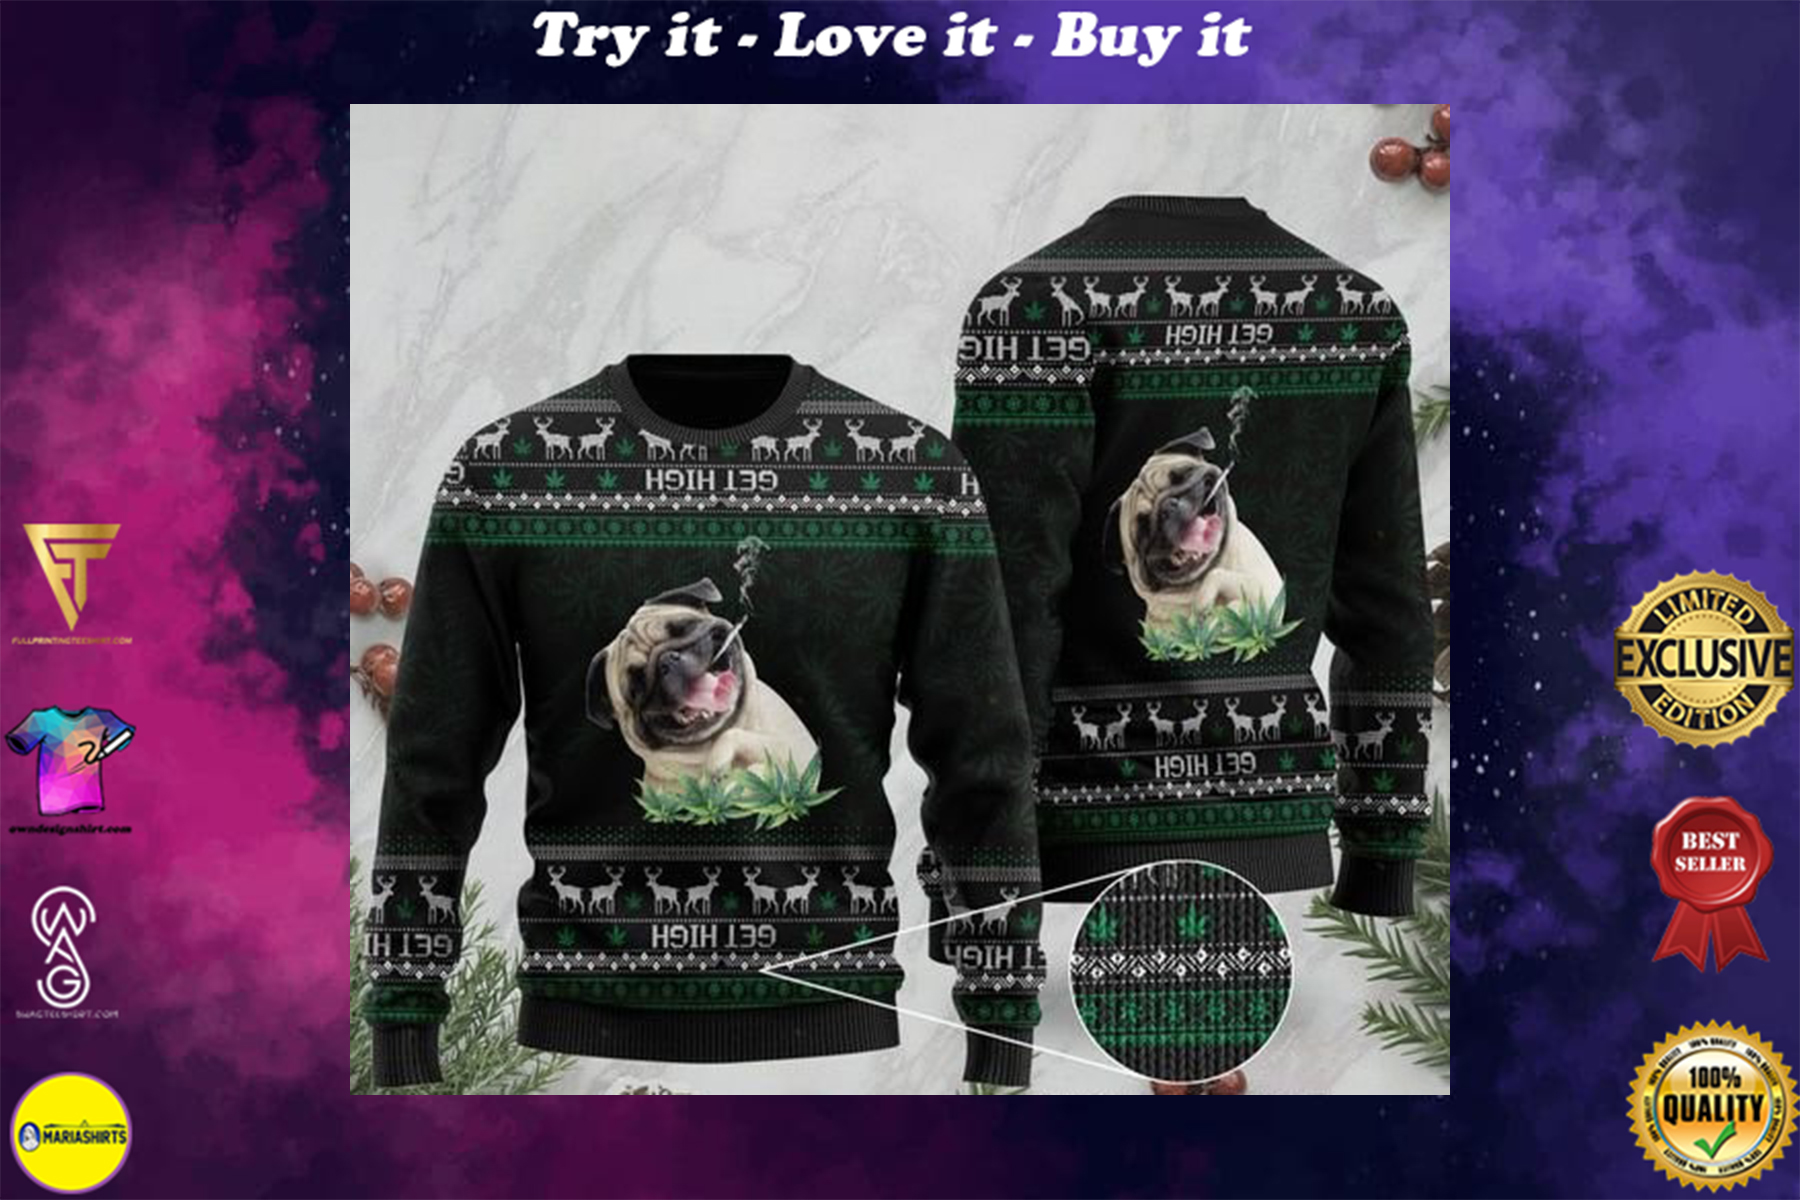 [highest selling] pug get high cannabis full printing ugly sweater - maria